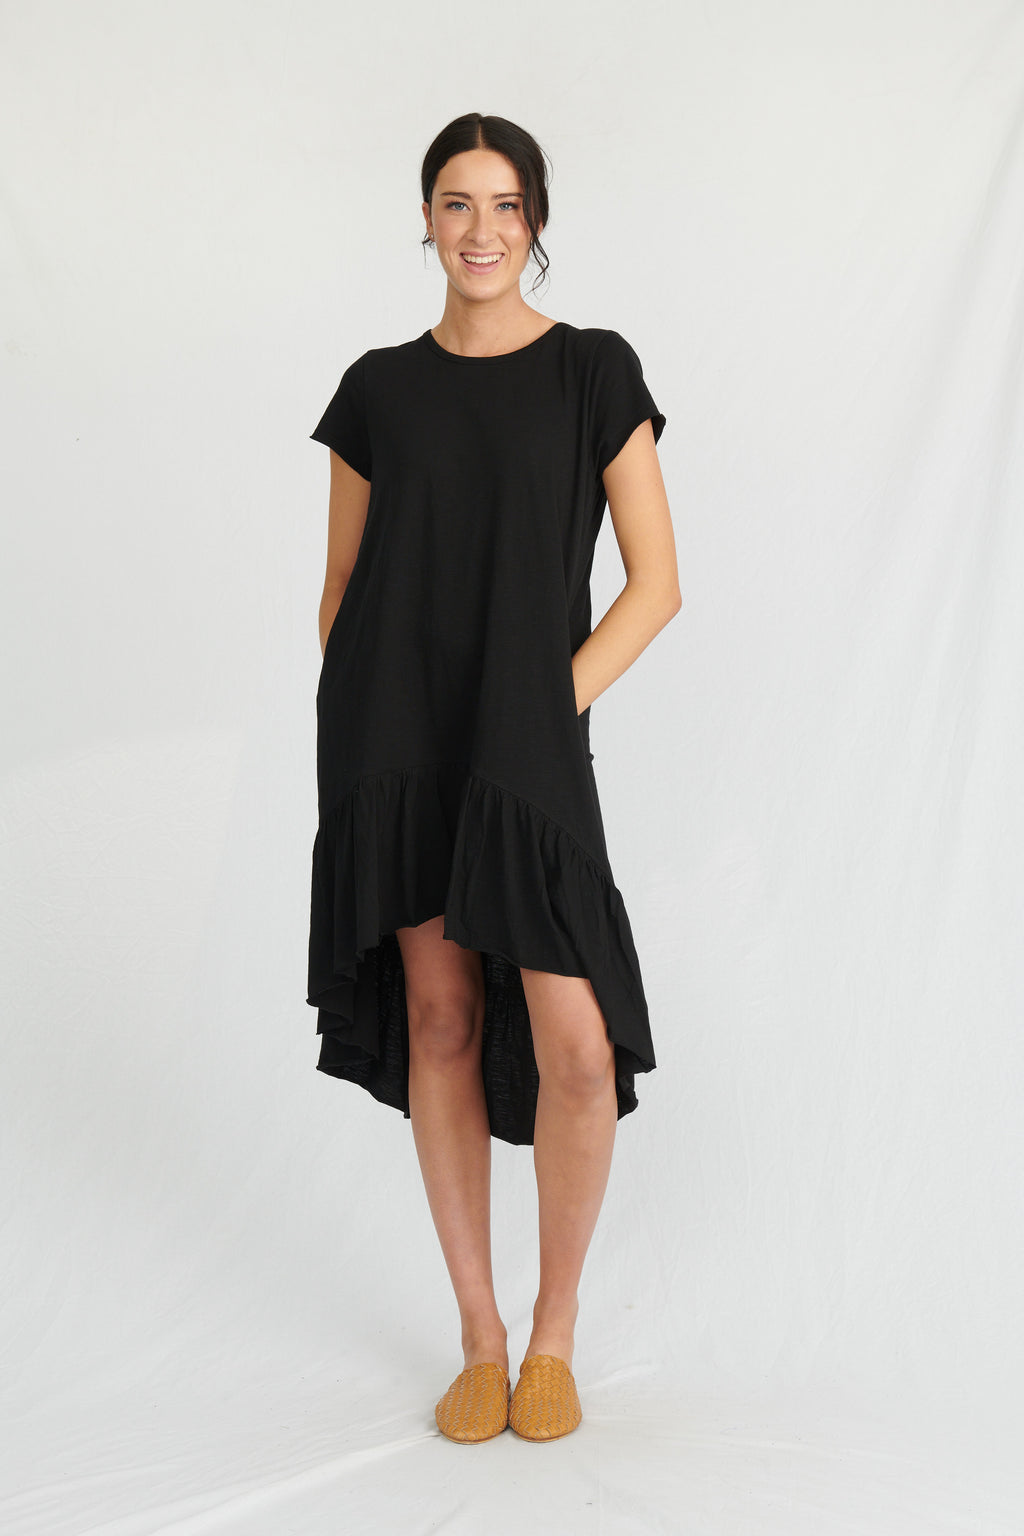 Lulu Organics Cotton Essentials - Somerville Dress Black